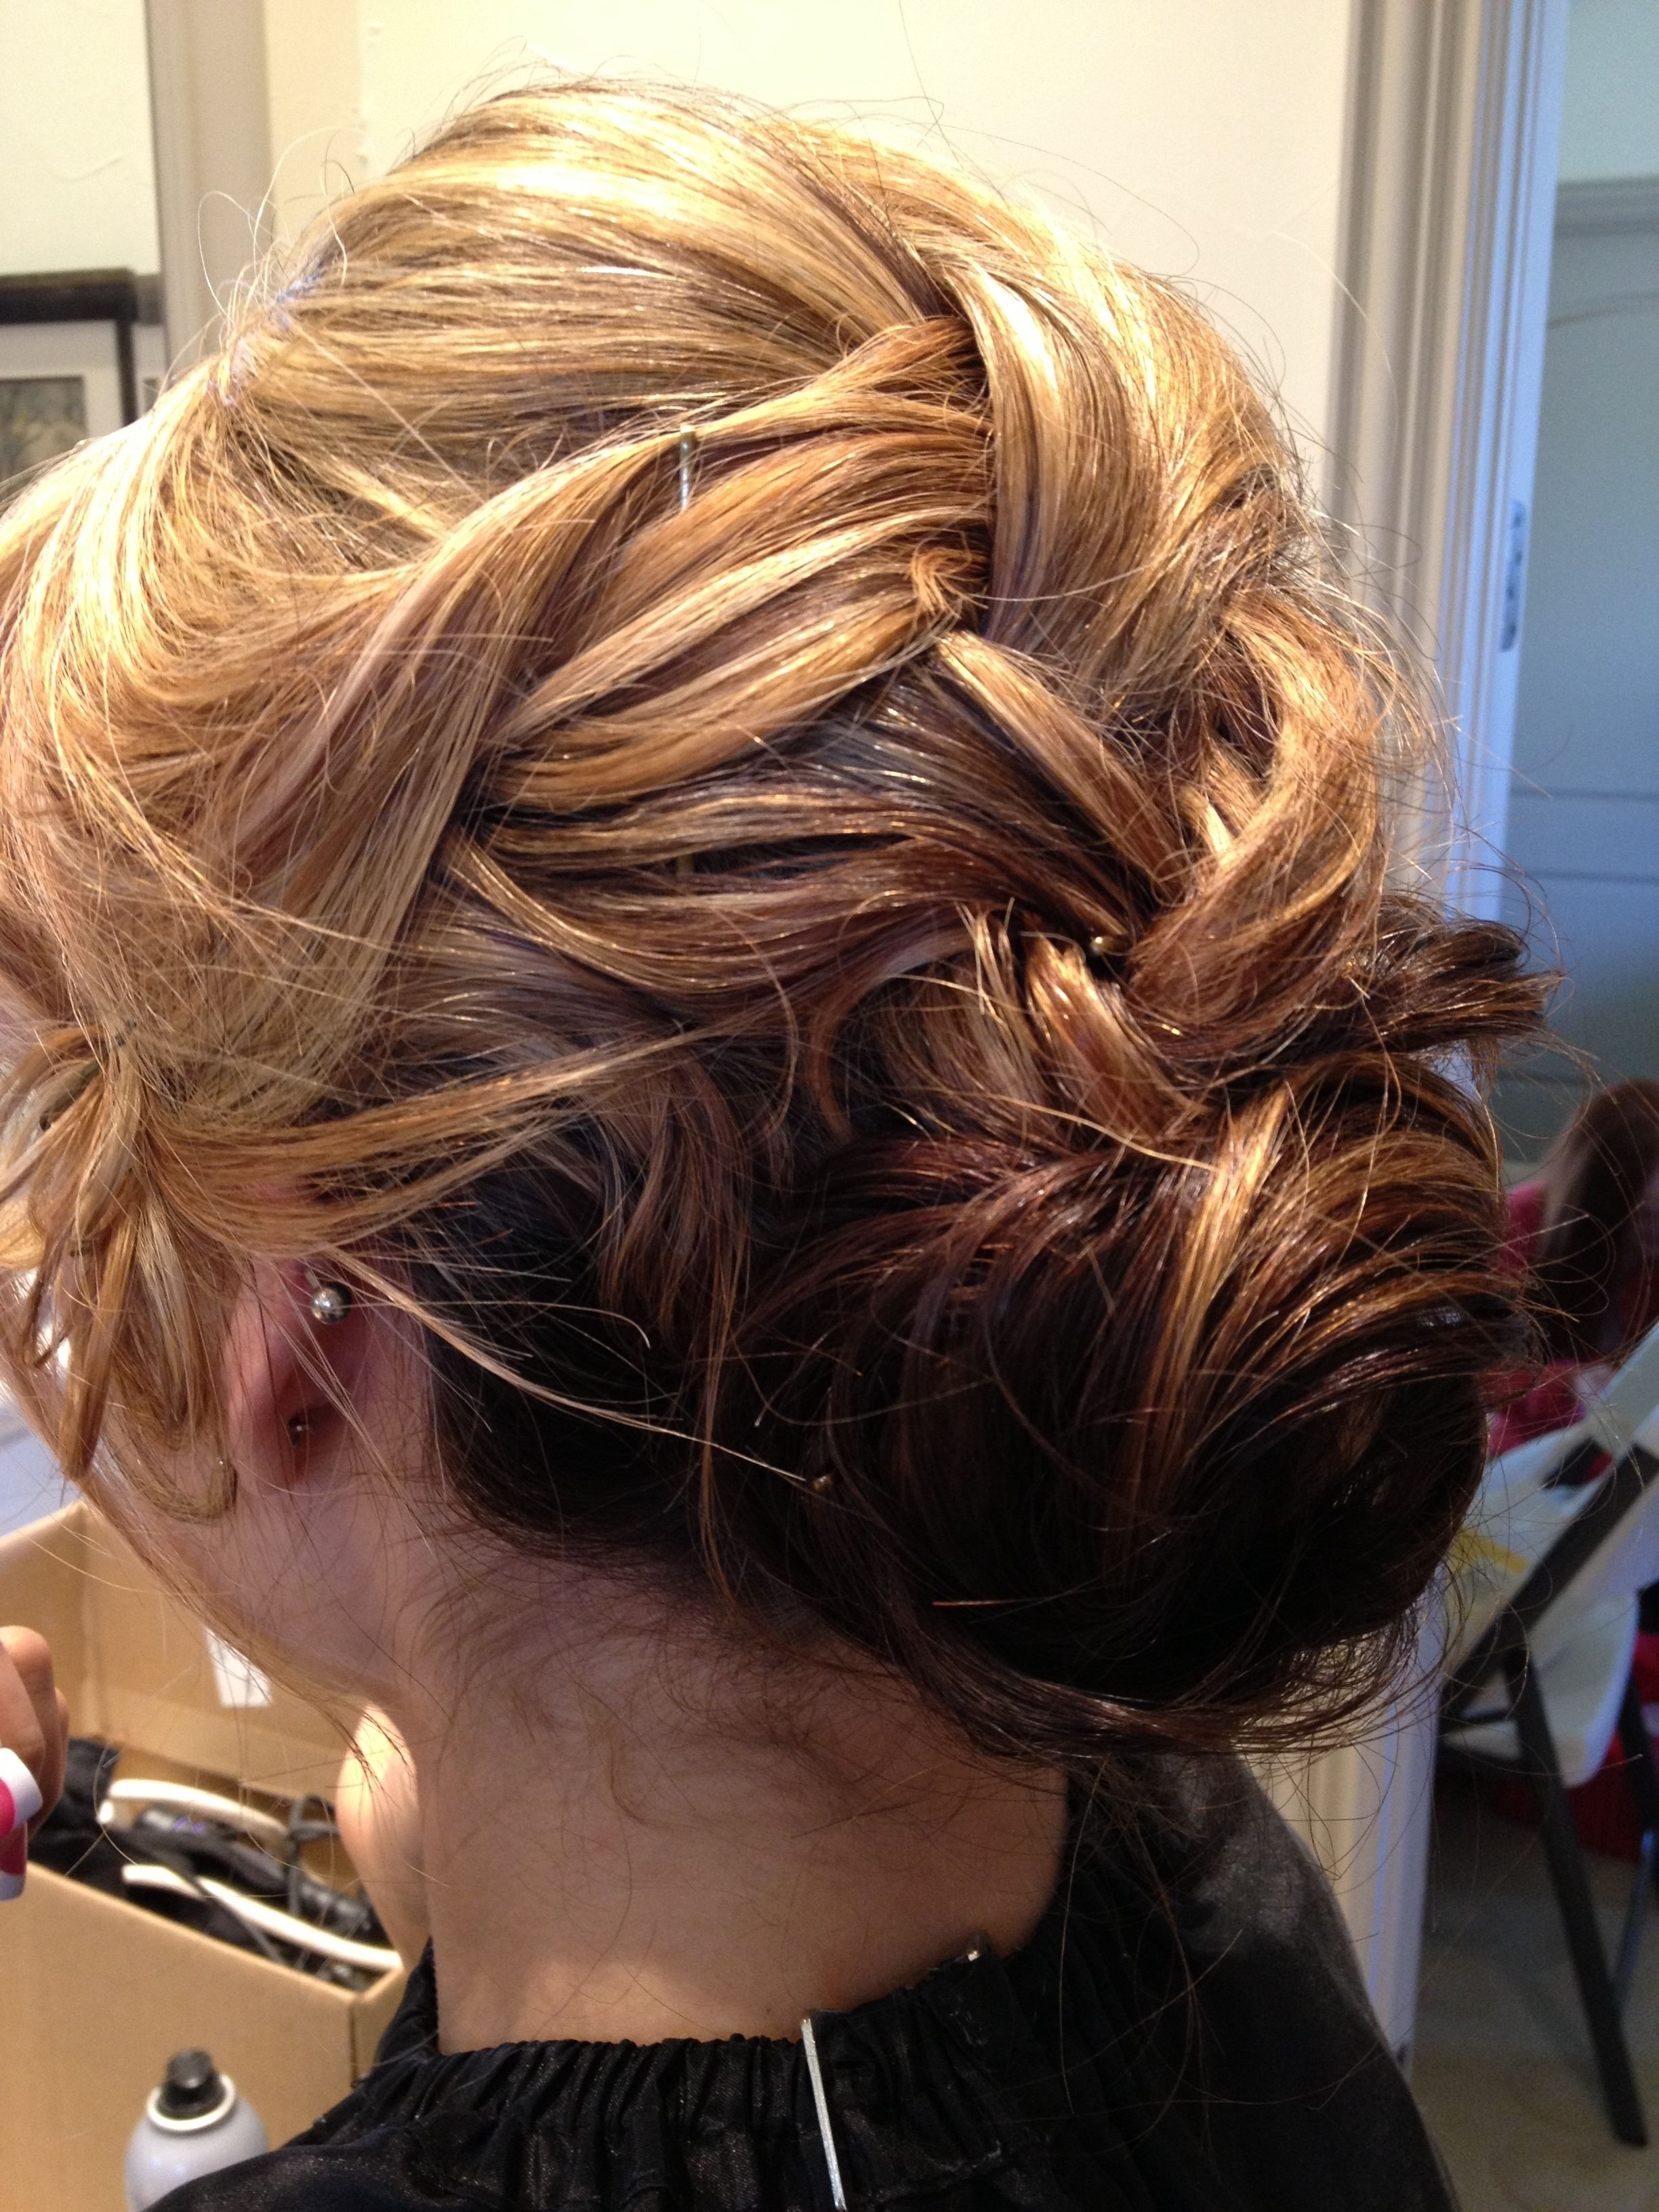 Fashionable Braided Loose Hairstyles Regarding Loose French Braid Into Low Bun Chignon Formal Hair Prom Wedding (View 15 of 15)